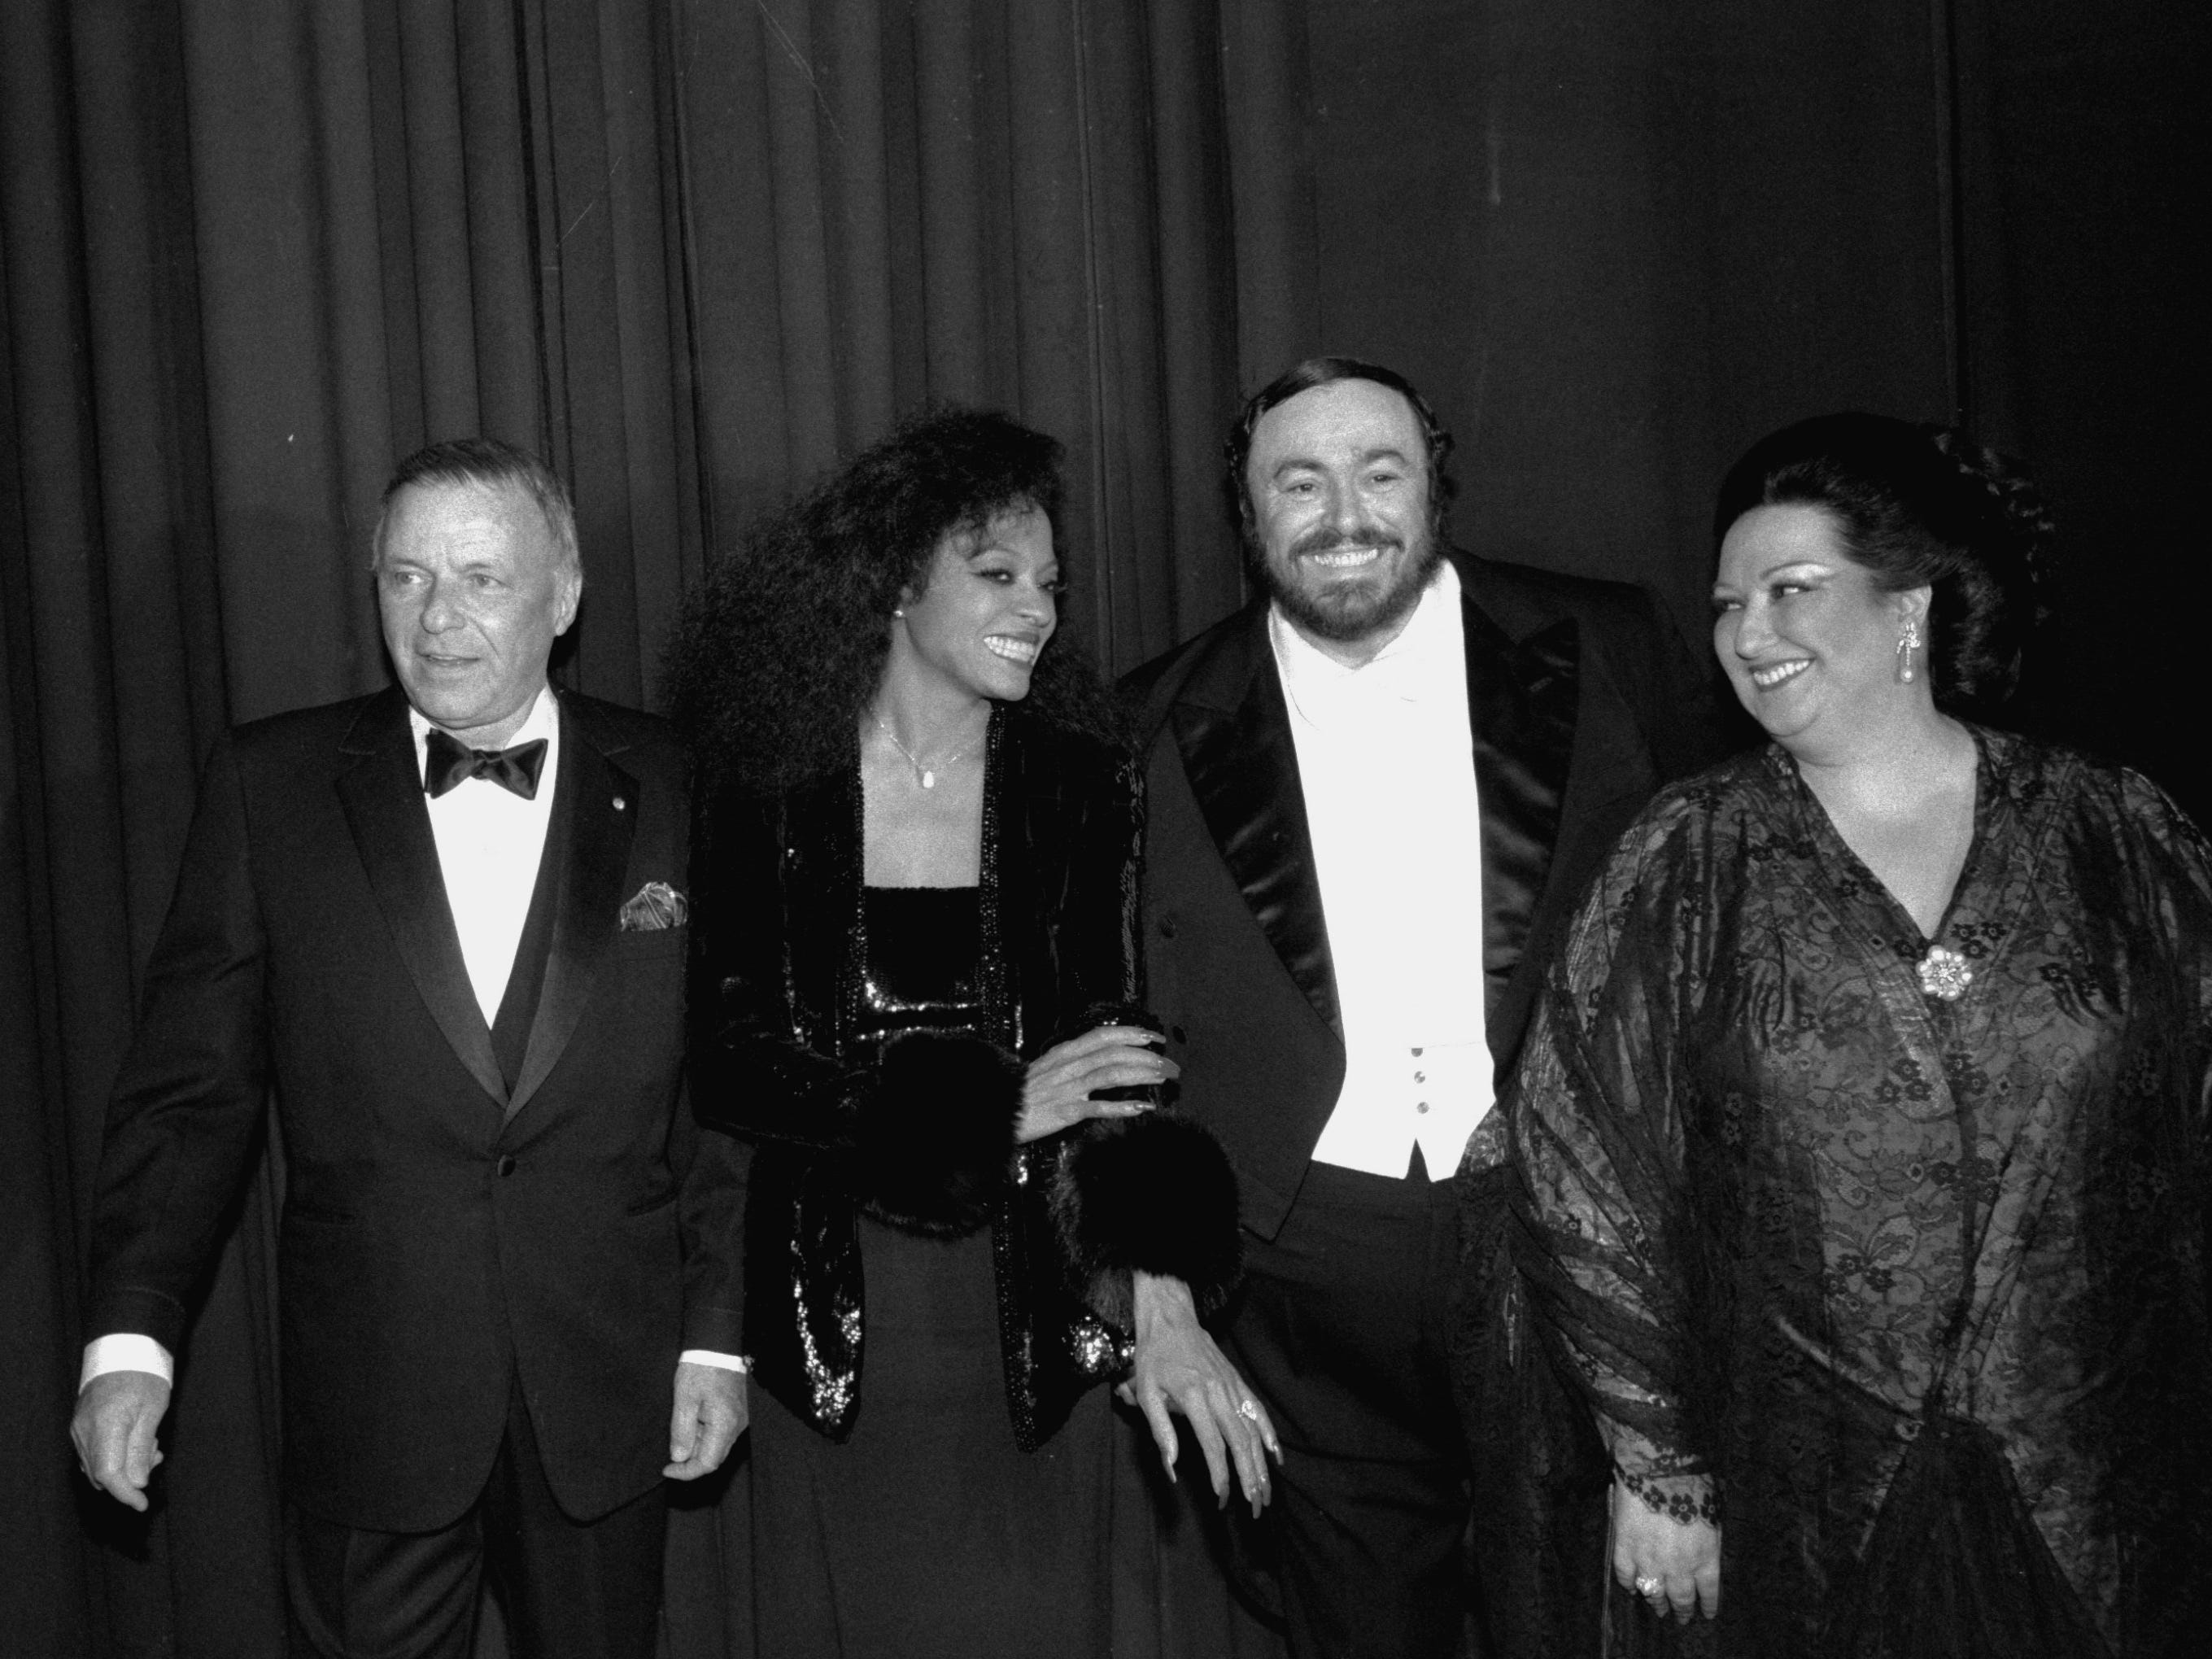 Frank Sinatra joins Diana Ross, Luciano Pavarotti and Montserrat Caballe on March 18, 1984, at New York's Radio City Music Hall before performing in a benefit concert for cancer research.  The sold-out performance raised $3.5 million for the Memorial Sloan-Kettering Cancer Center.